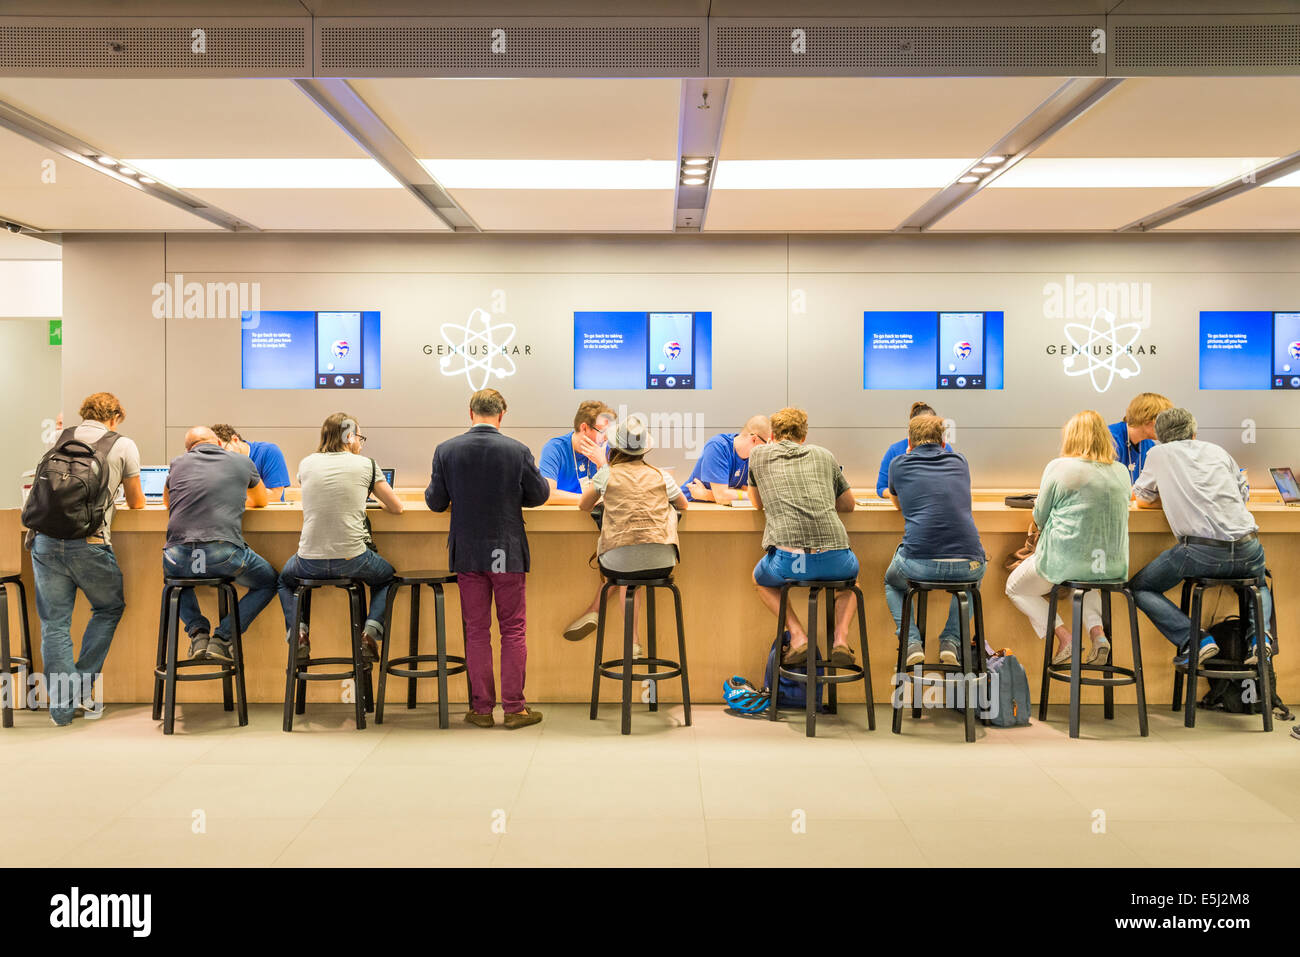 Support client au Genius Bar de l'Apple Store, Londres, Angleterre, Royaume-Uni Photo Stock